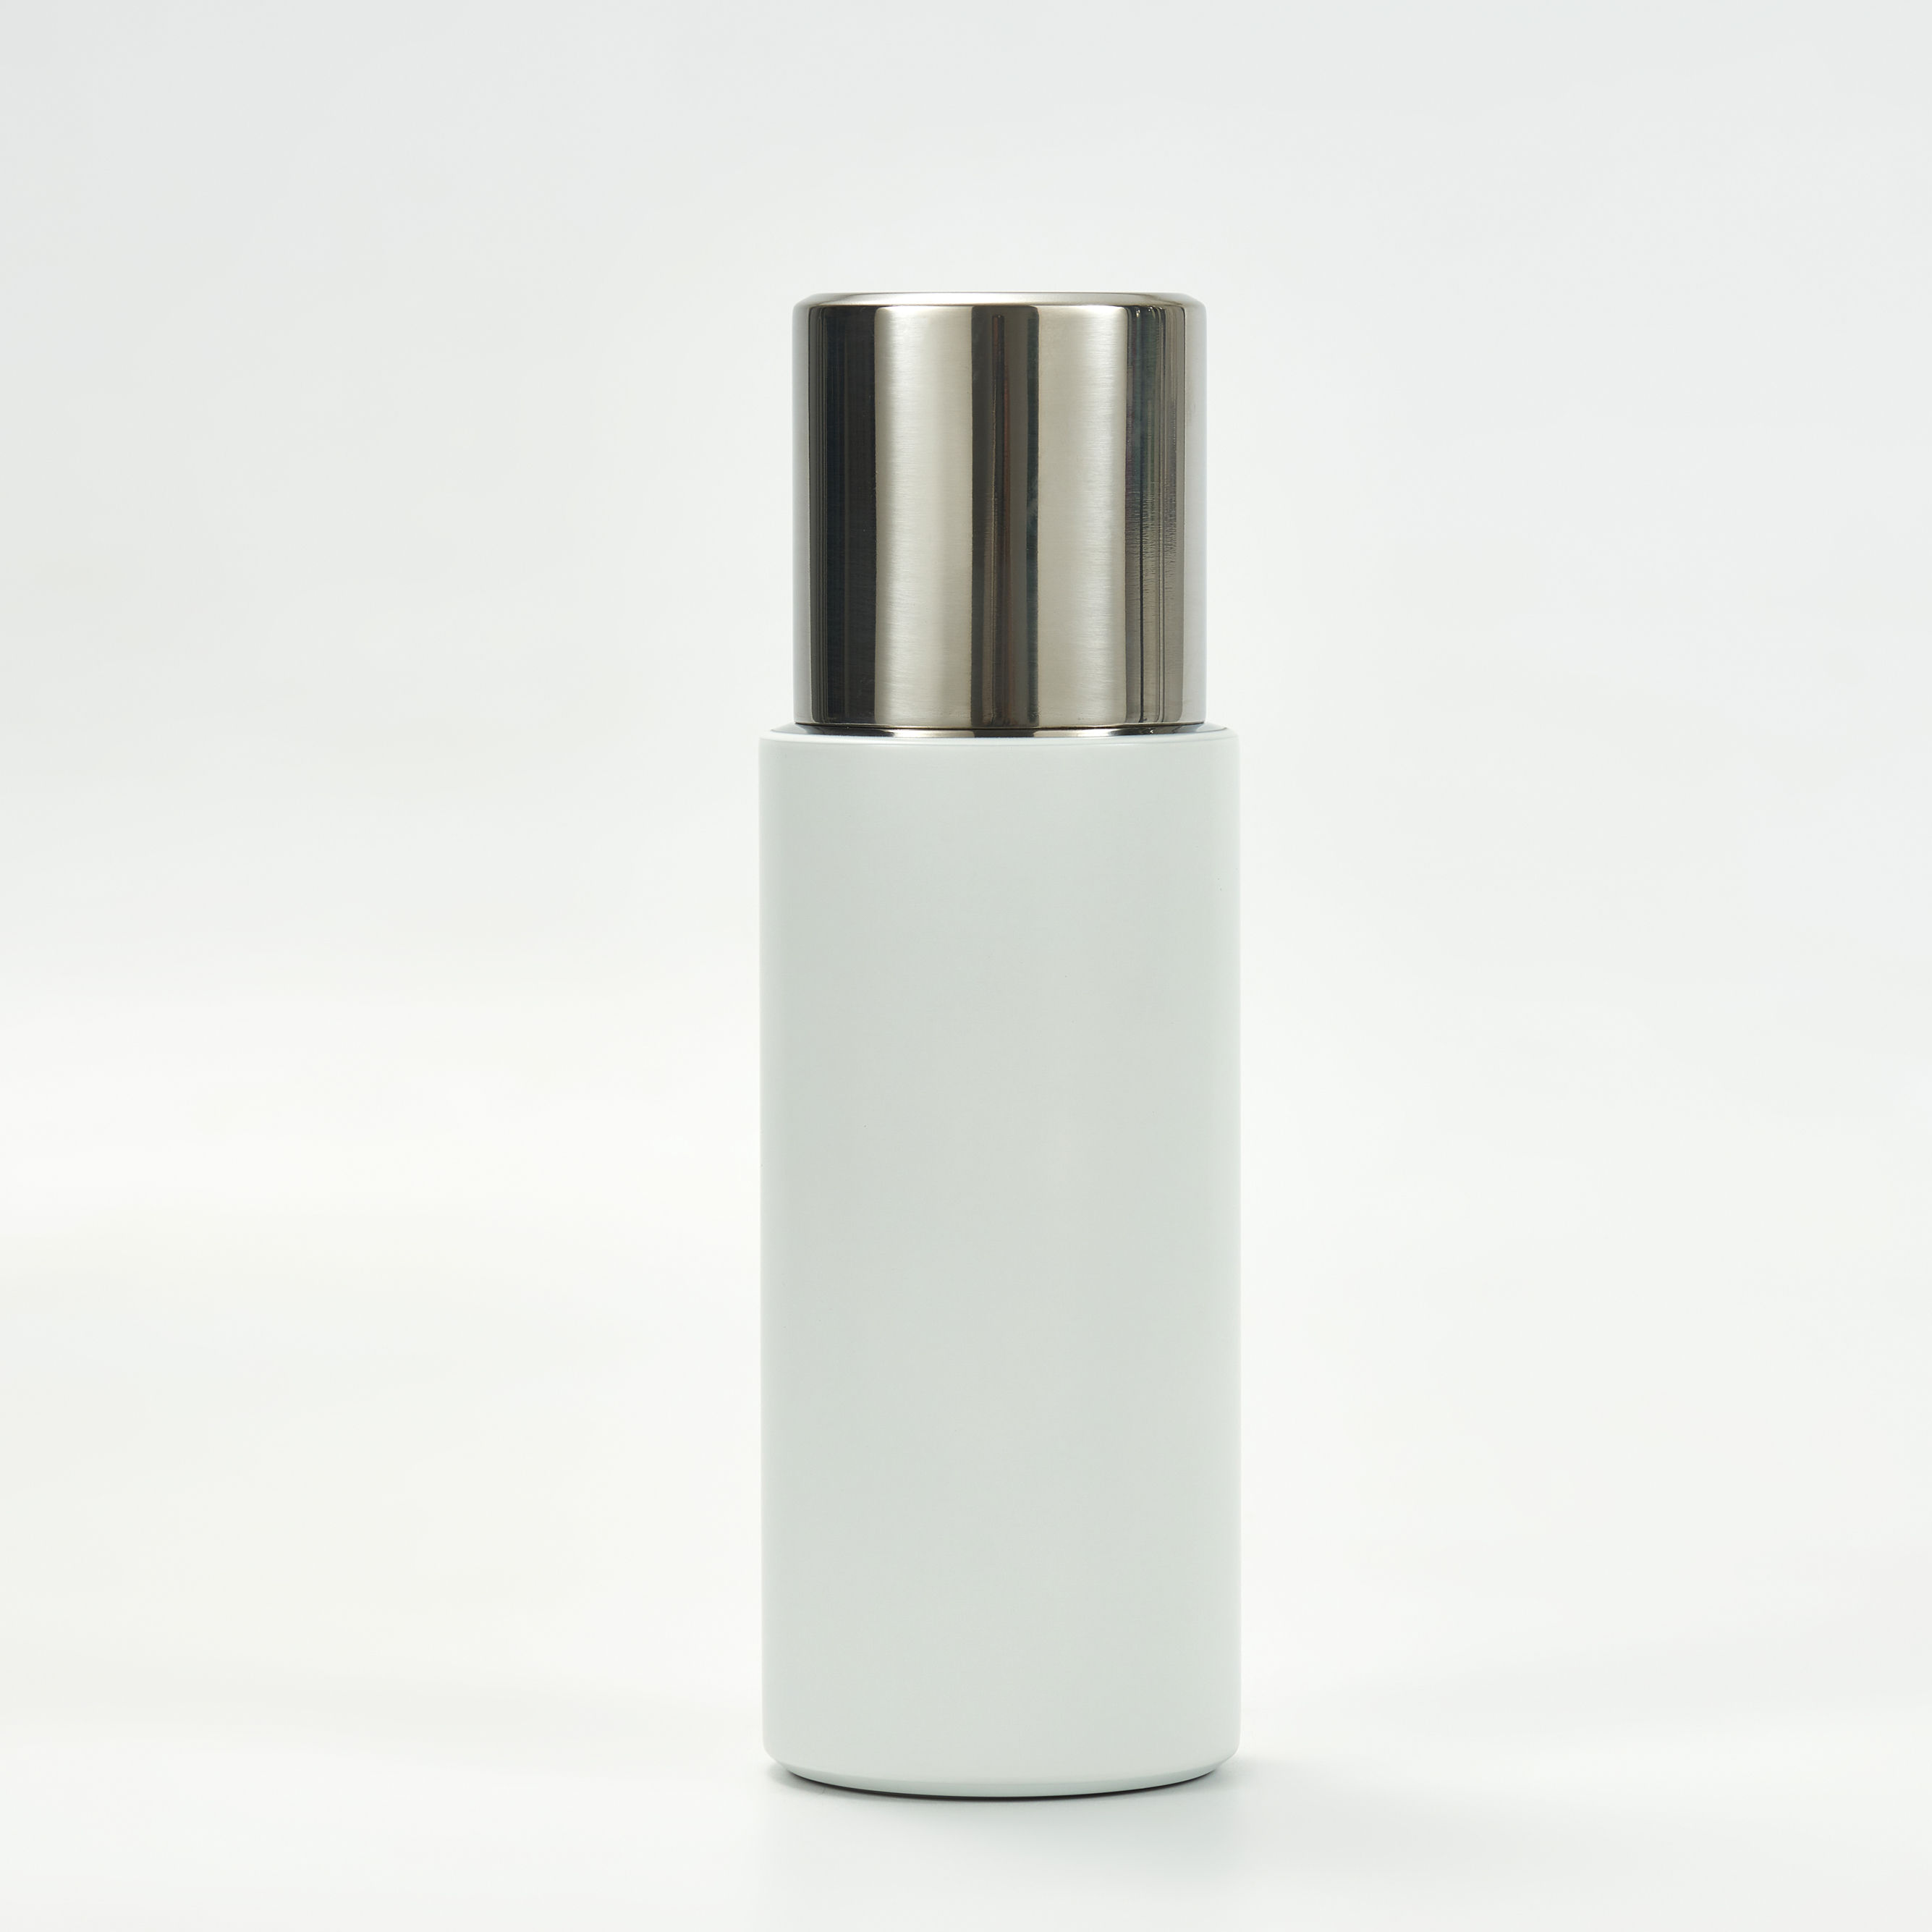 Double wall 350ml stainless steel drinking vacuum insulated flask bottle bullet shaped water thermos